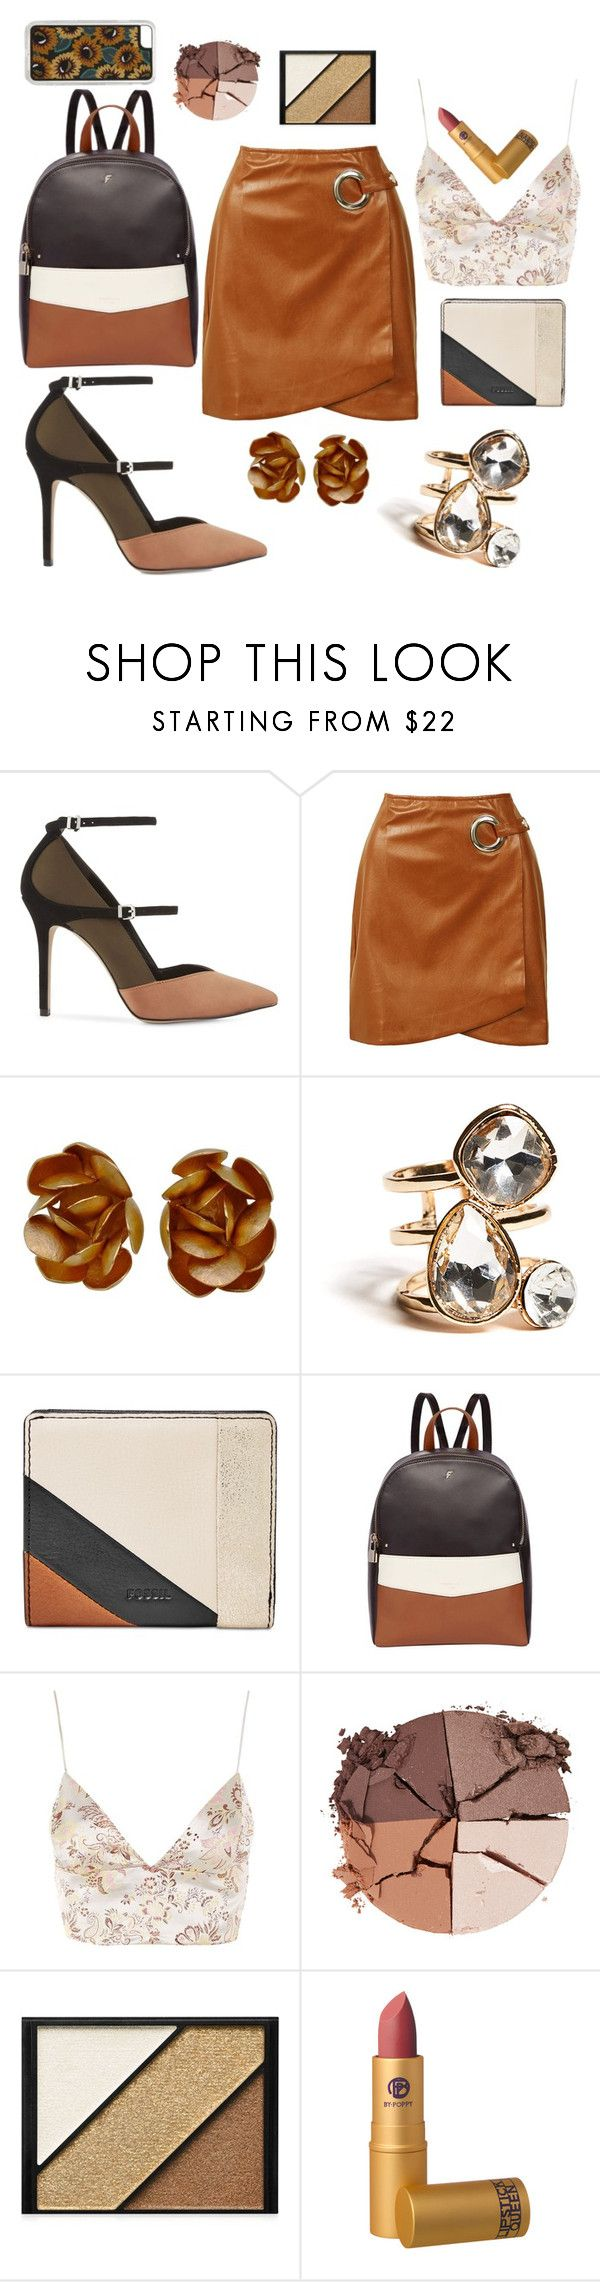 """Untitled #339"" by inesgenebra on Polyvore featuring beauty, Reiss, Sans Souci, GUESS, FOSSIL, Fiorelli, WYLDR, lilah b., Elizabeth Arden and Lipstick Queen"